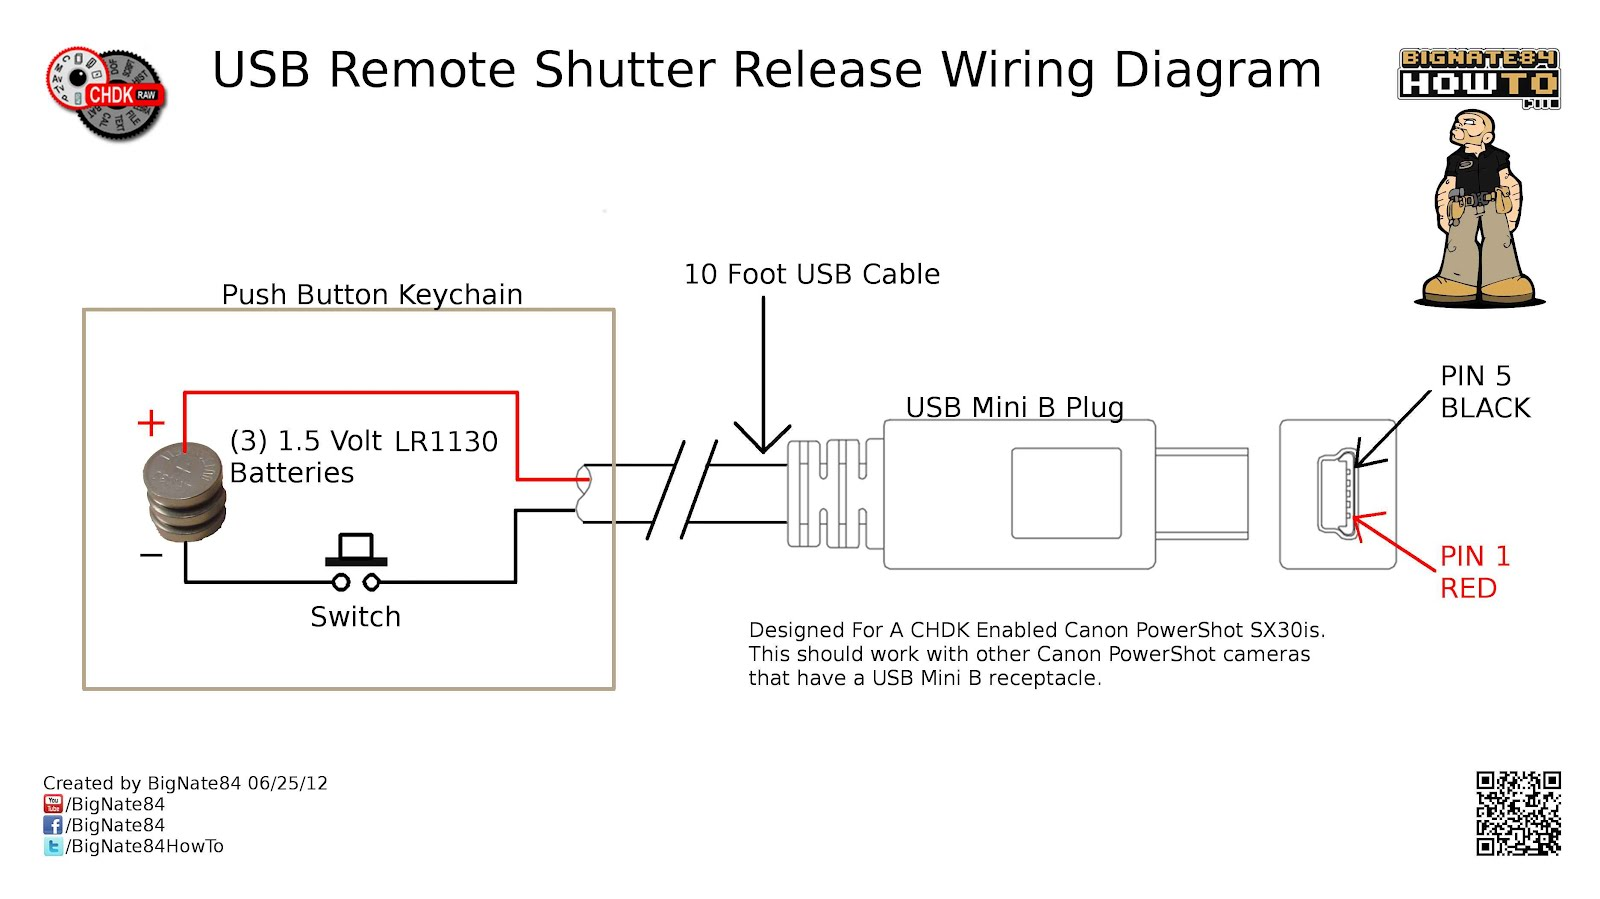 image 0001 usb remote shutter wiring diagram 1 jpeg chdk wiki rh chdk wikia com USB 2.0 Cable Diagram USB Wire Diagram and Function